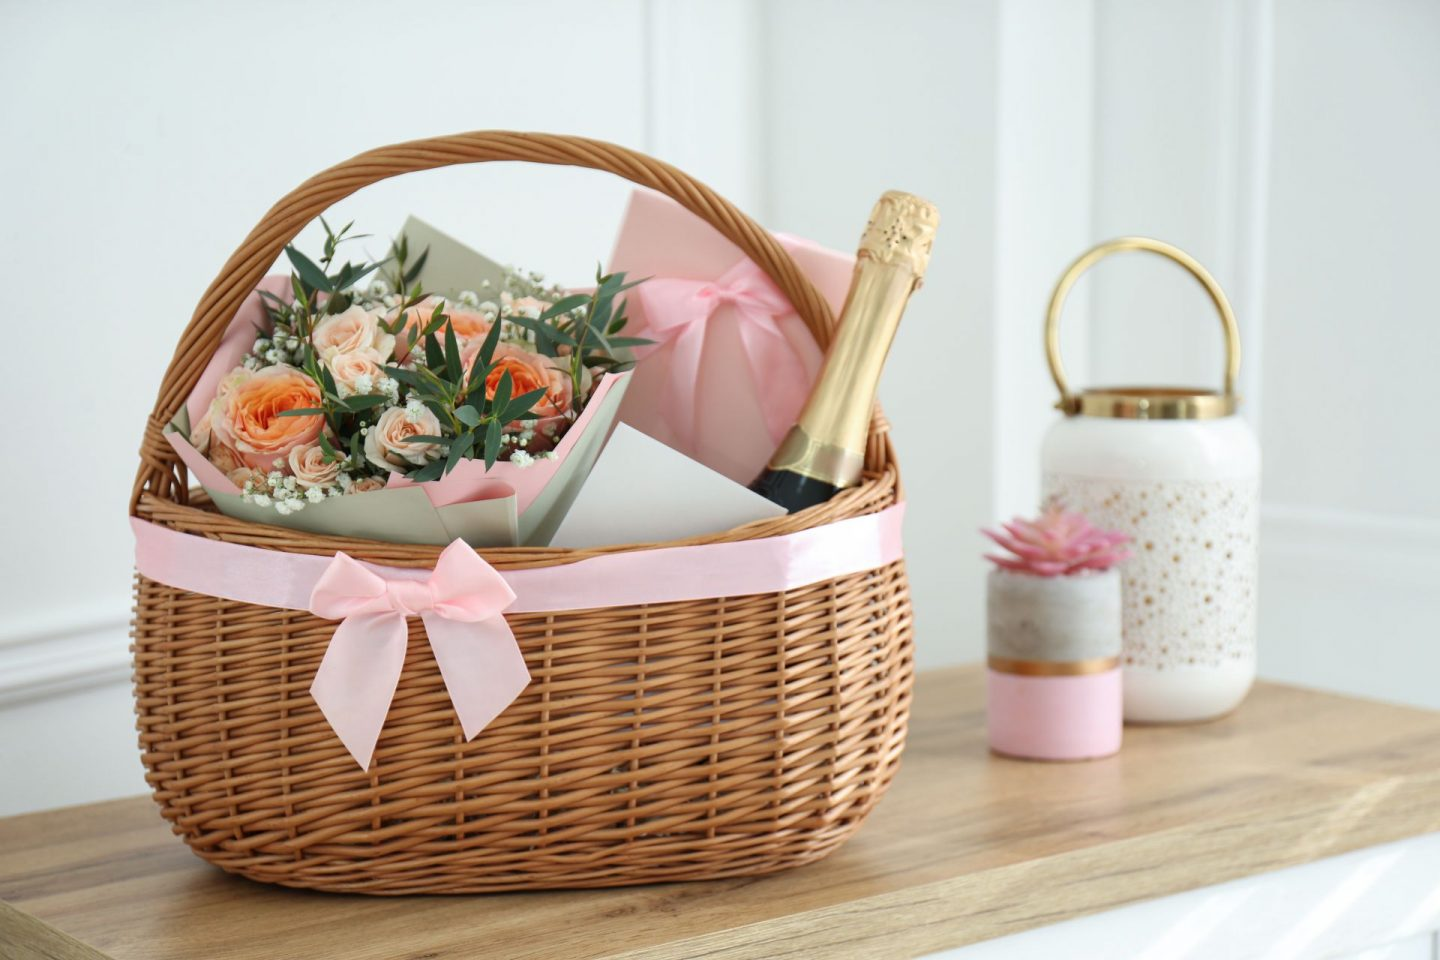 Create Your Own Luxury Spring Gift Basket